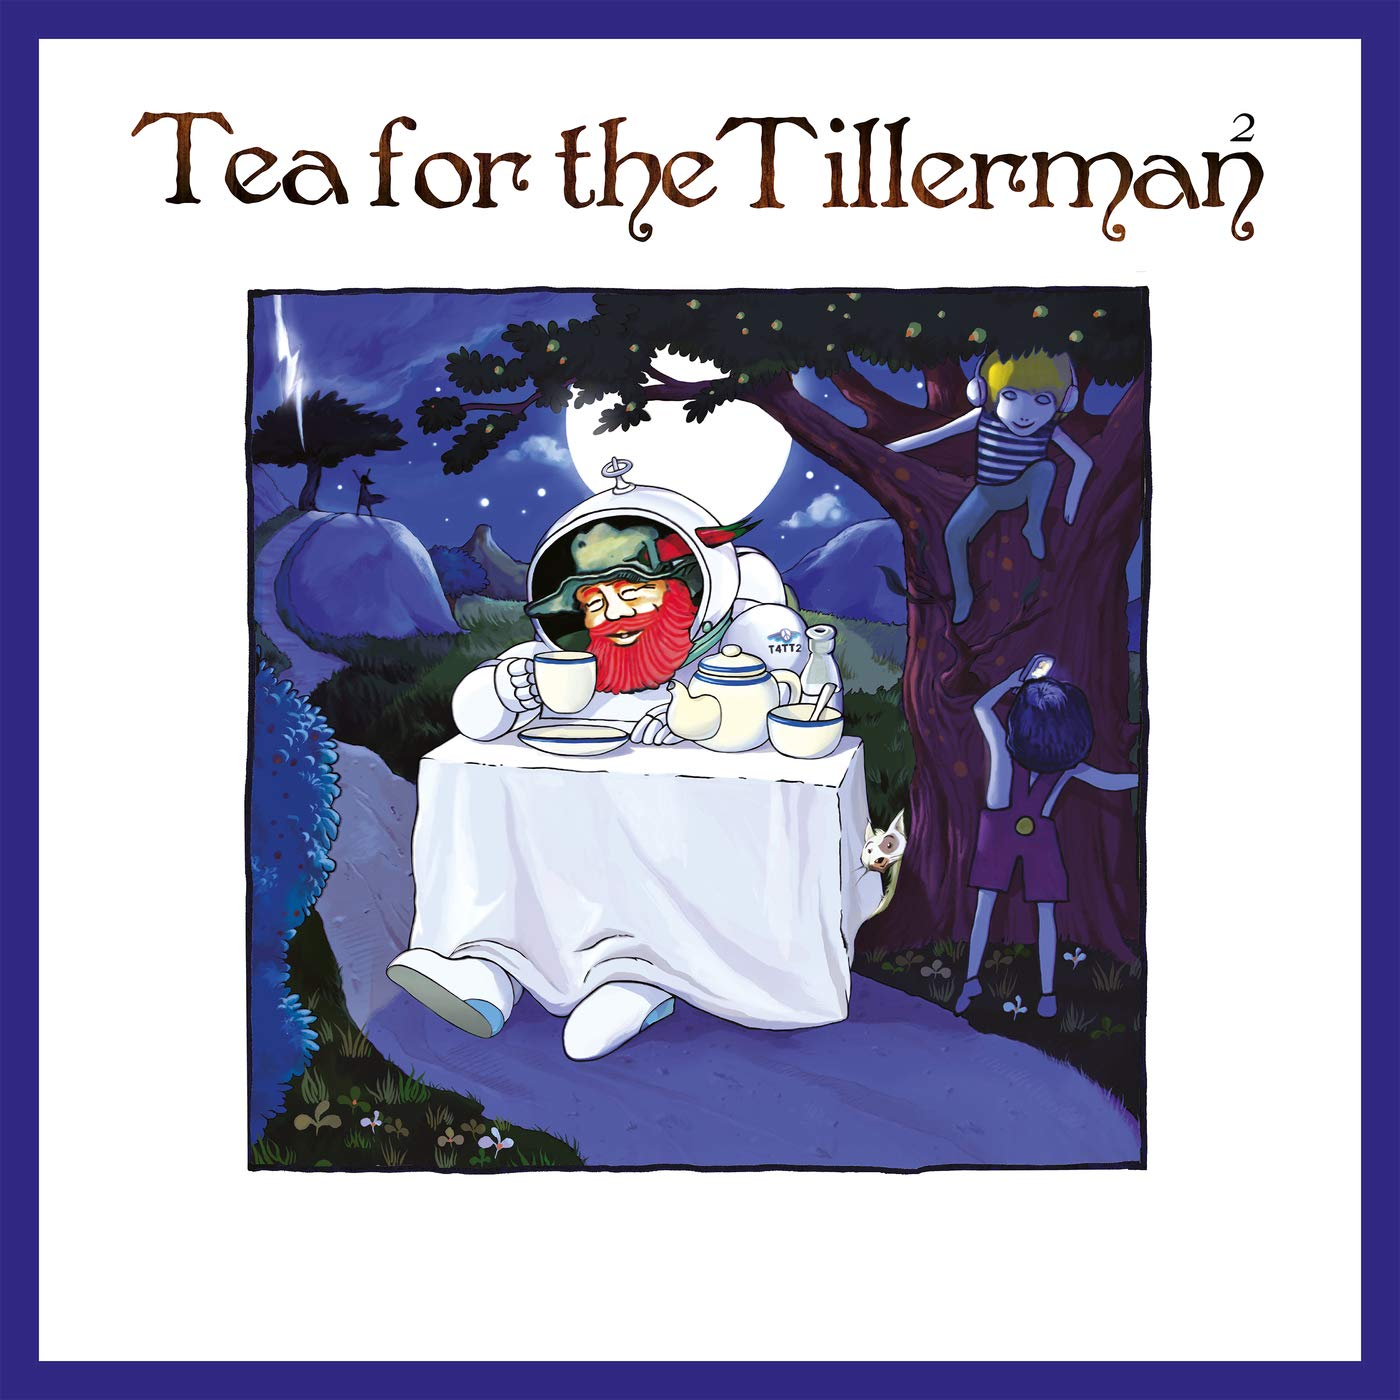 Yusuf/Cat Stevens: Tea for the Tillerman²